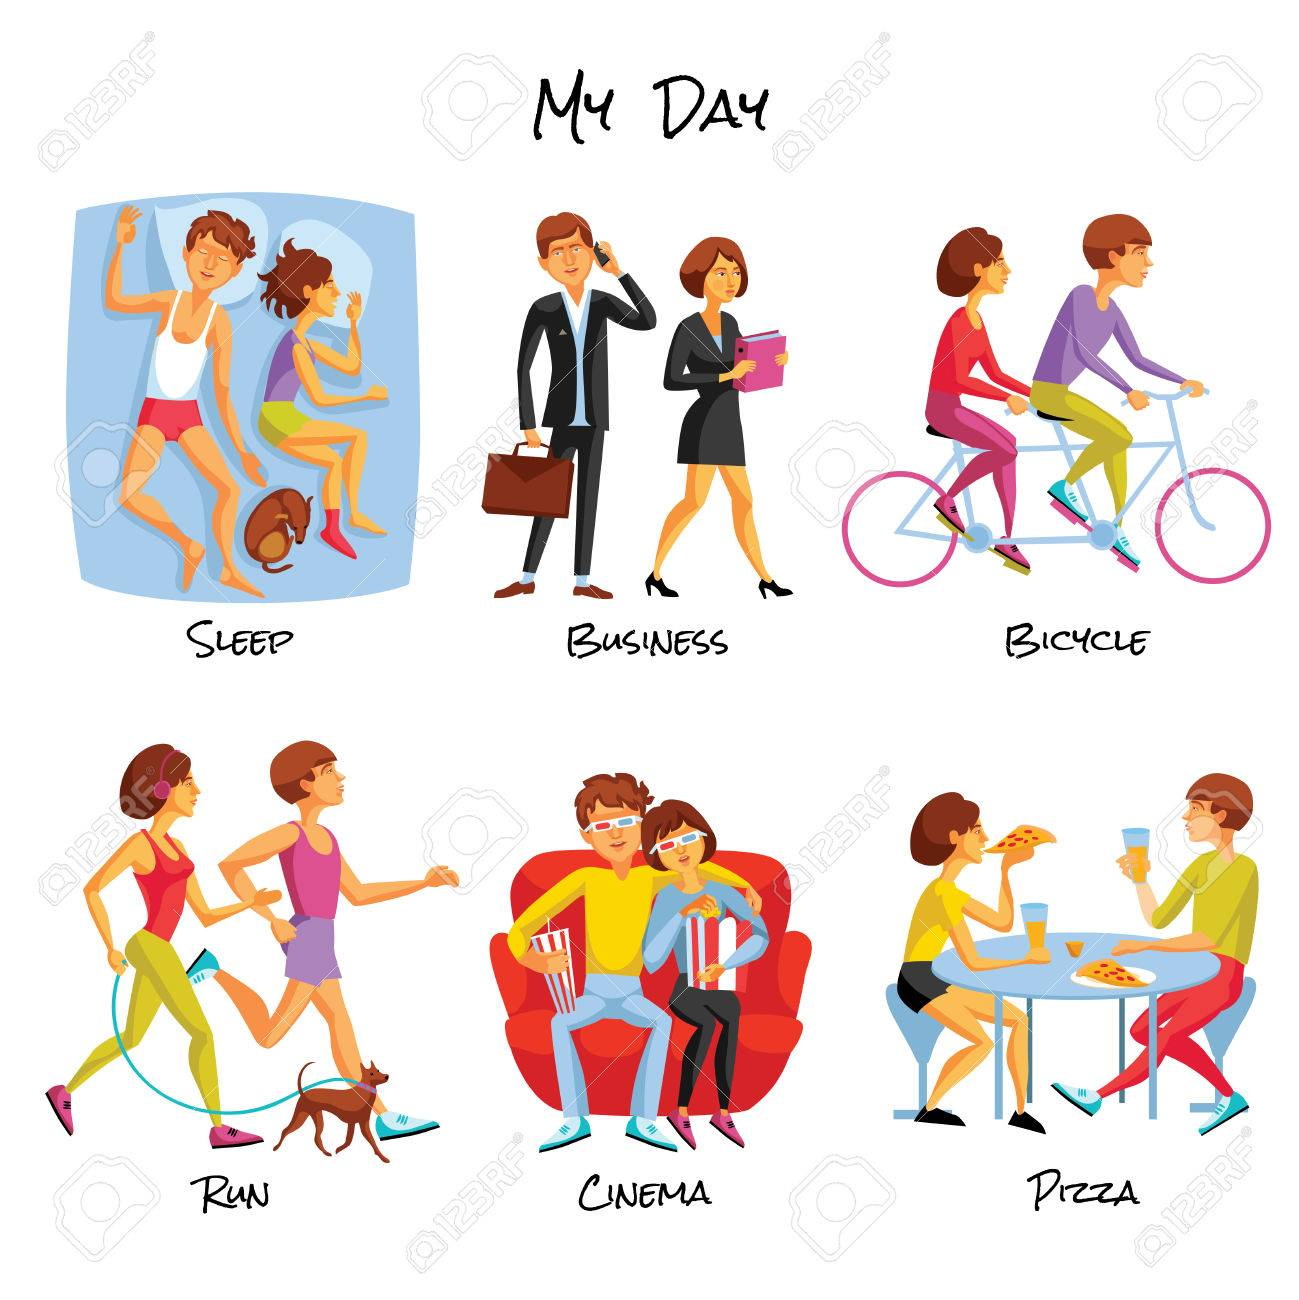 lifestyle icons set lifestyle vector illustration daily routine